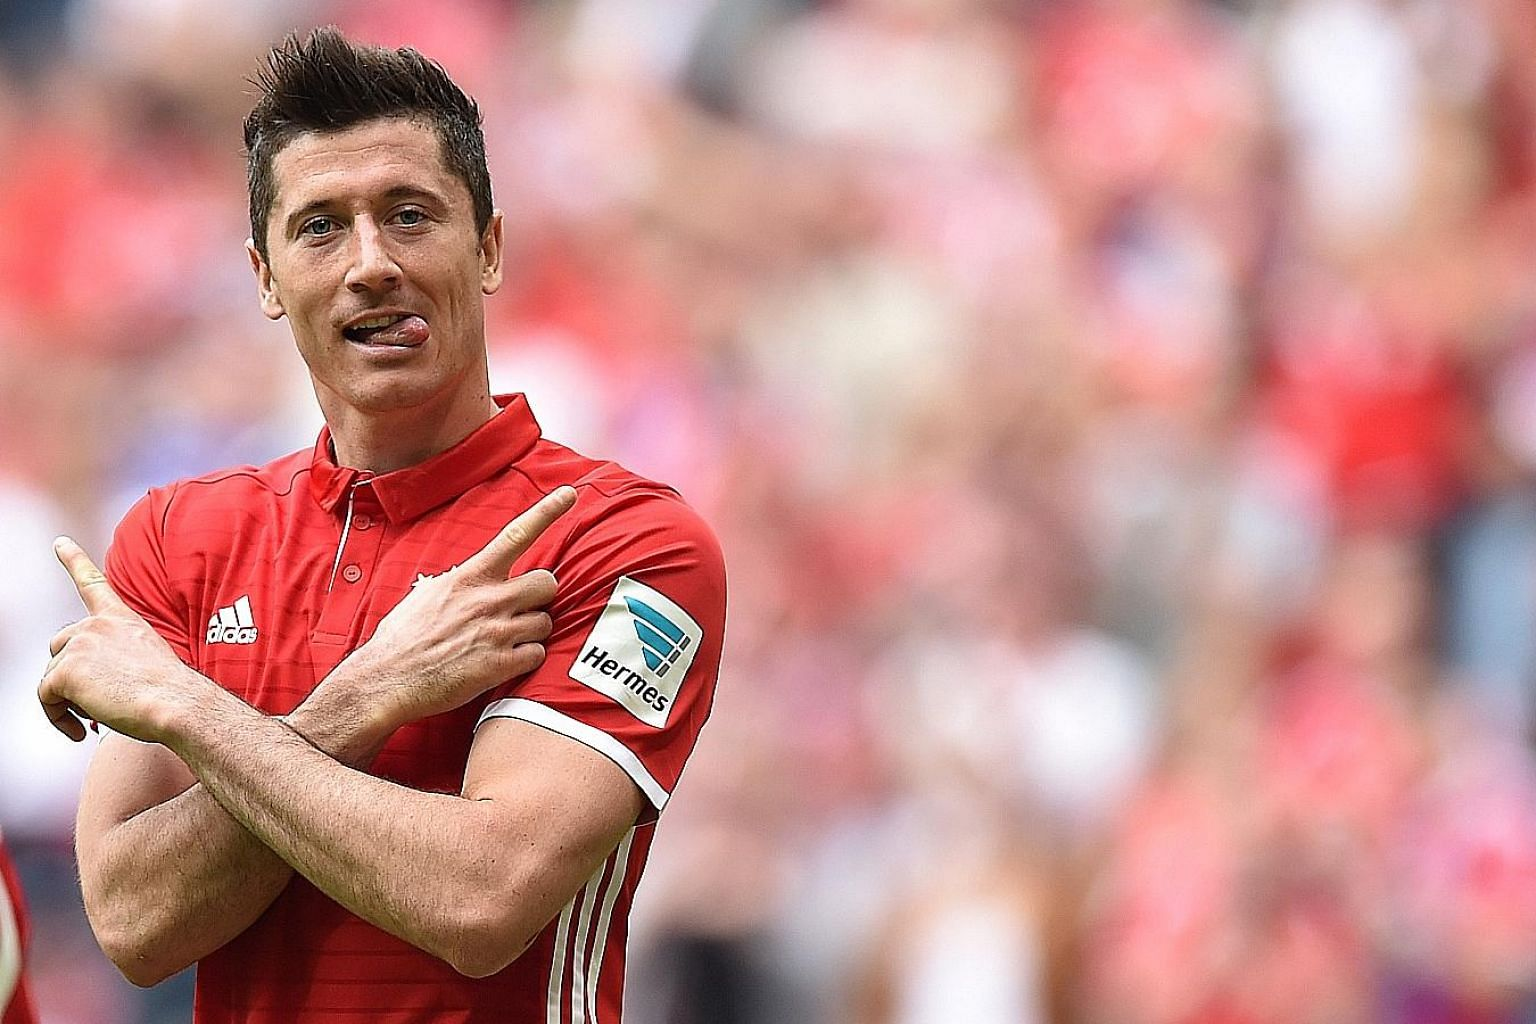 Robert Lewandowski celebrating one of his three goals against Augsburg in the Bundesliga. The Pole is in top form as Bayern chase a treble of league, cup and European titles.